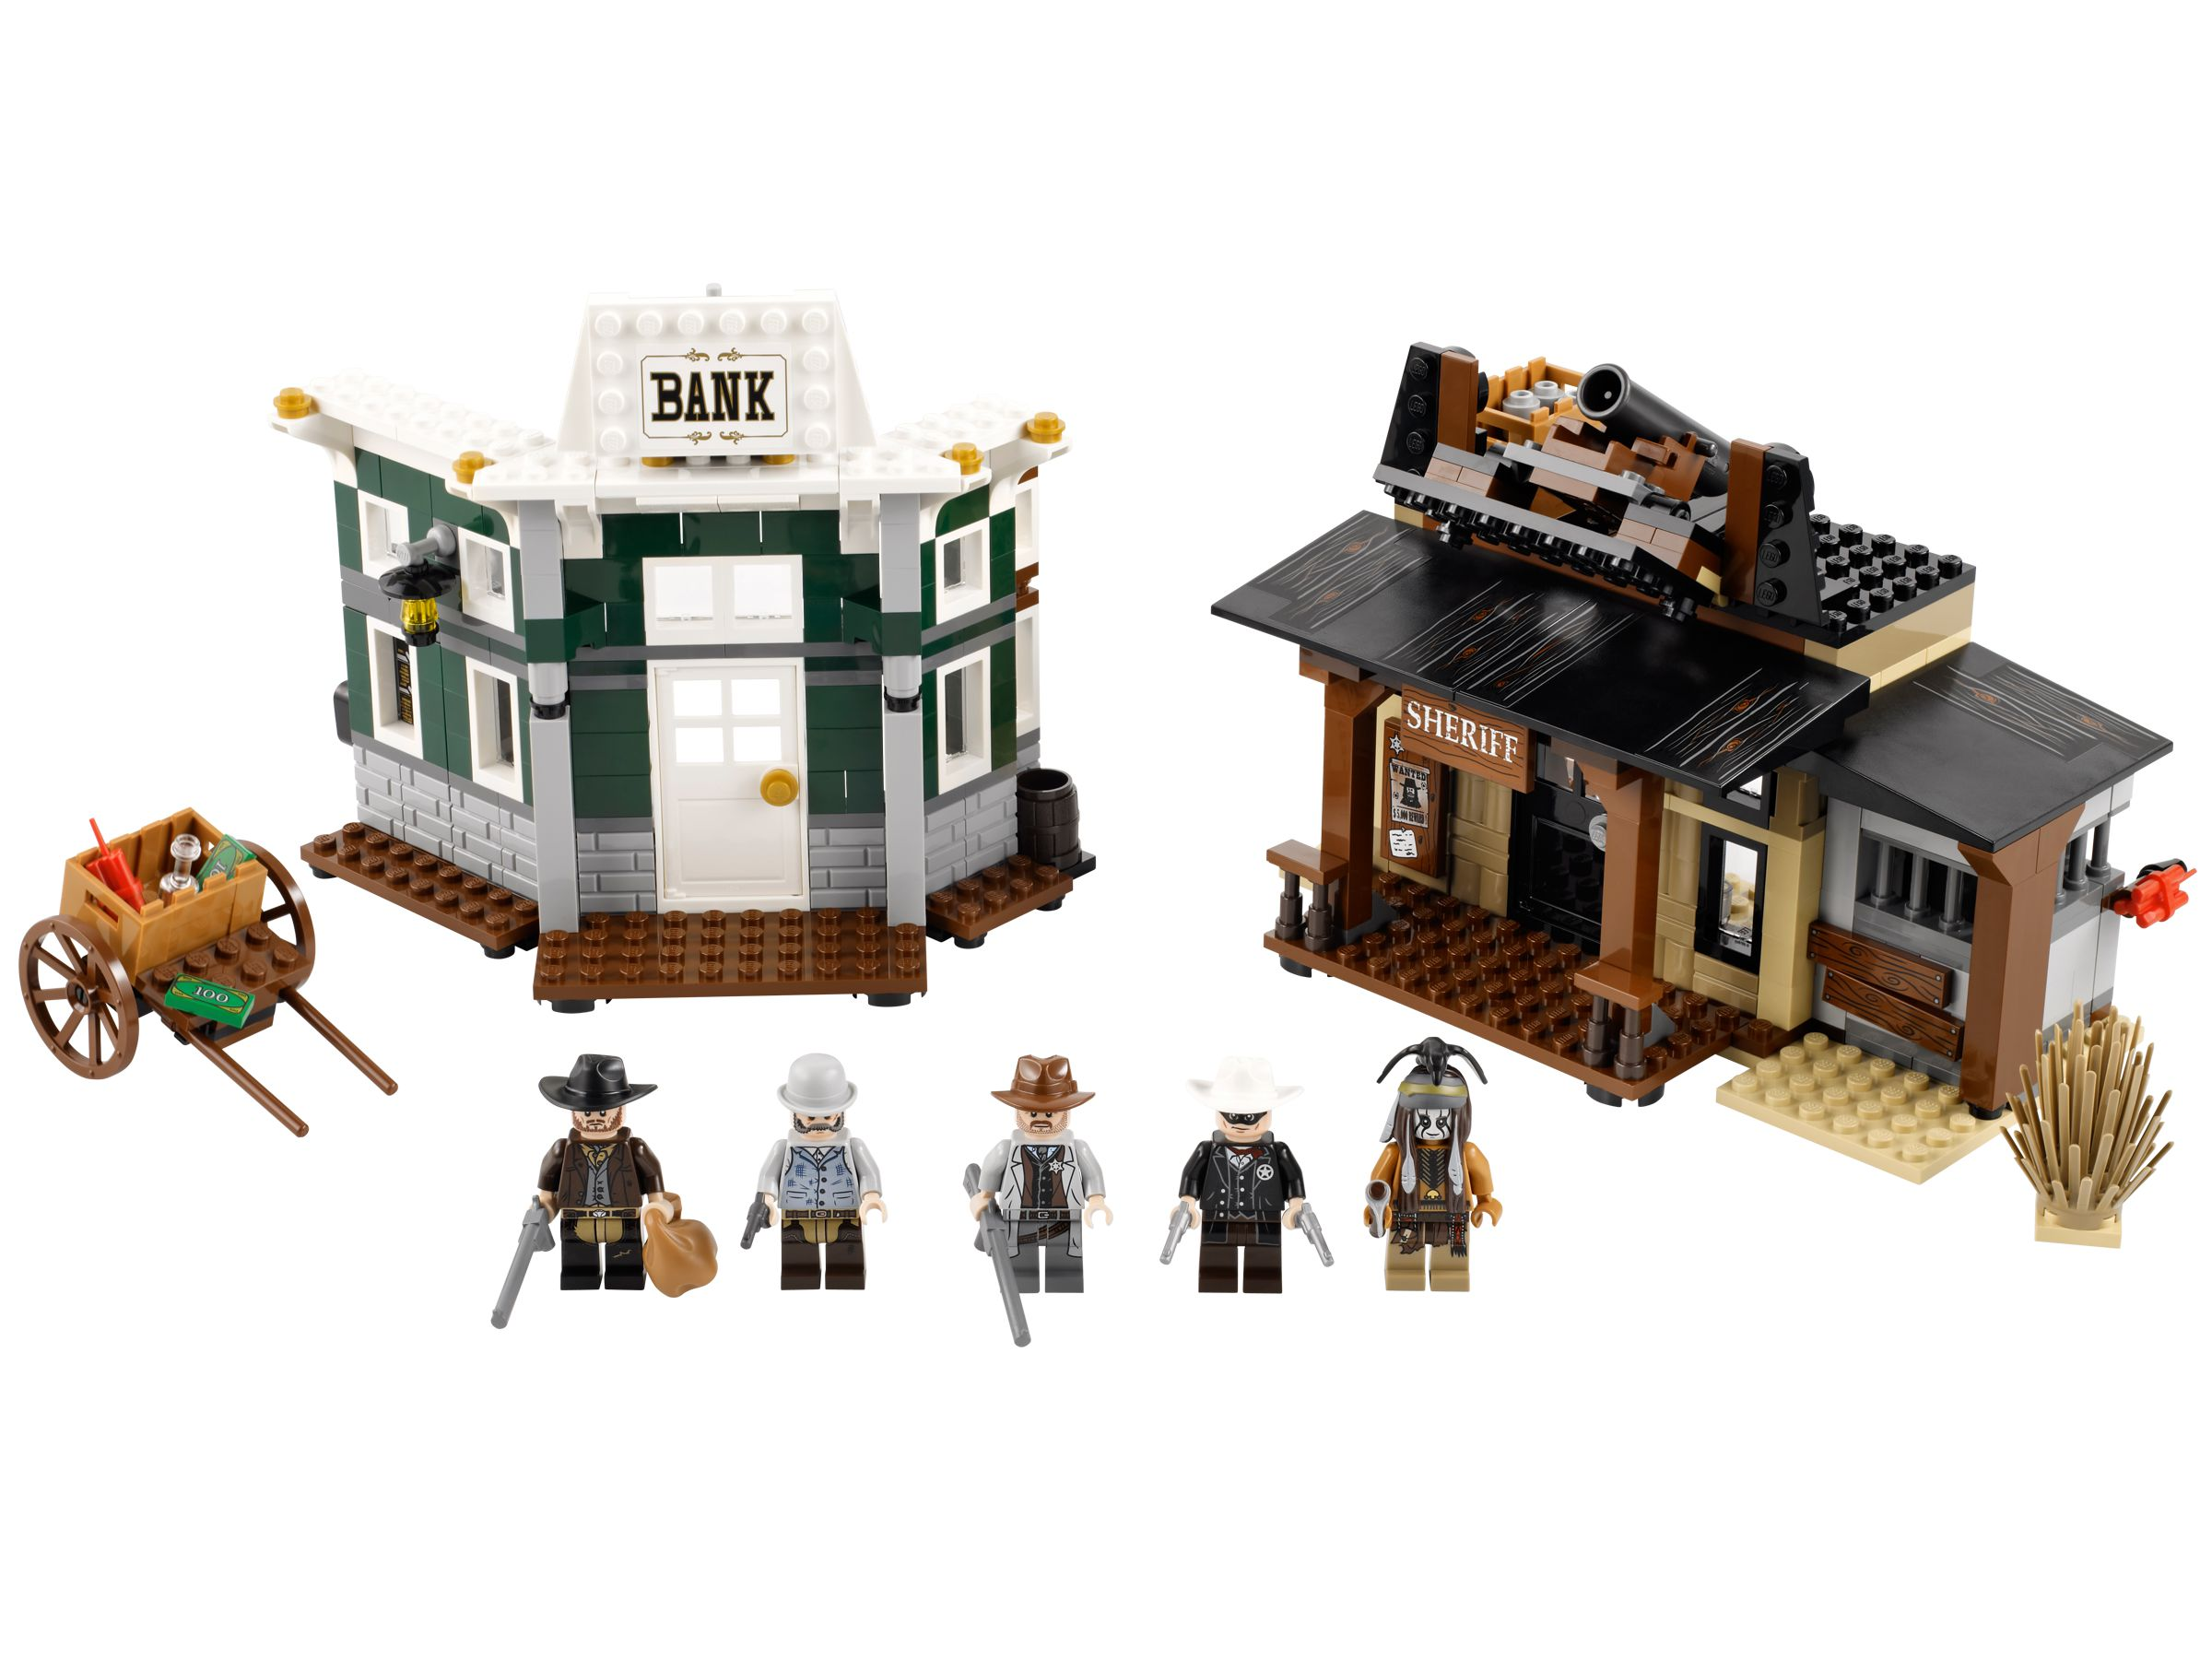 LEGO Lone Ranger 79109 Duell in Colby City LEGO_79109.jpg